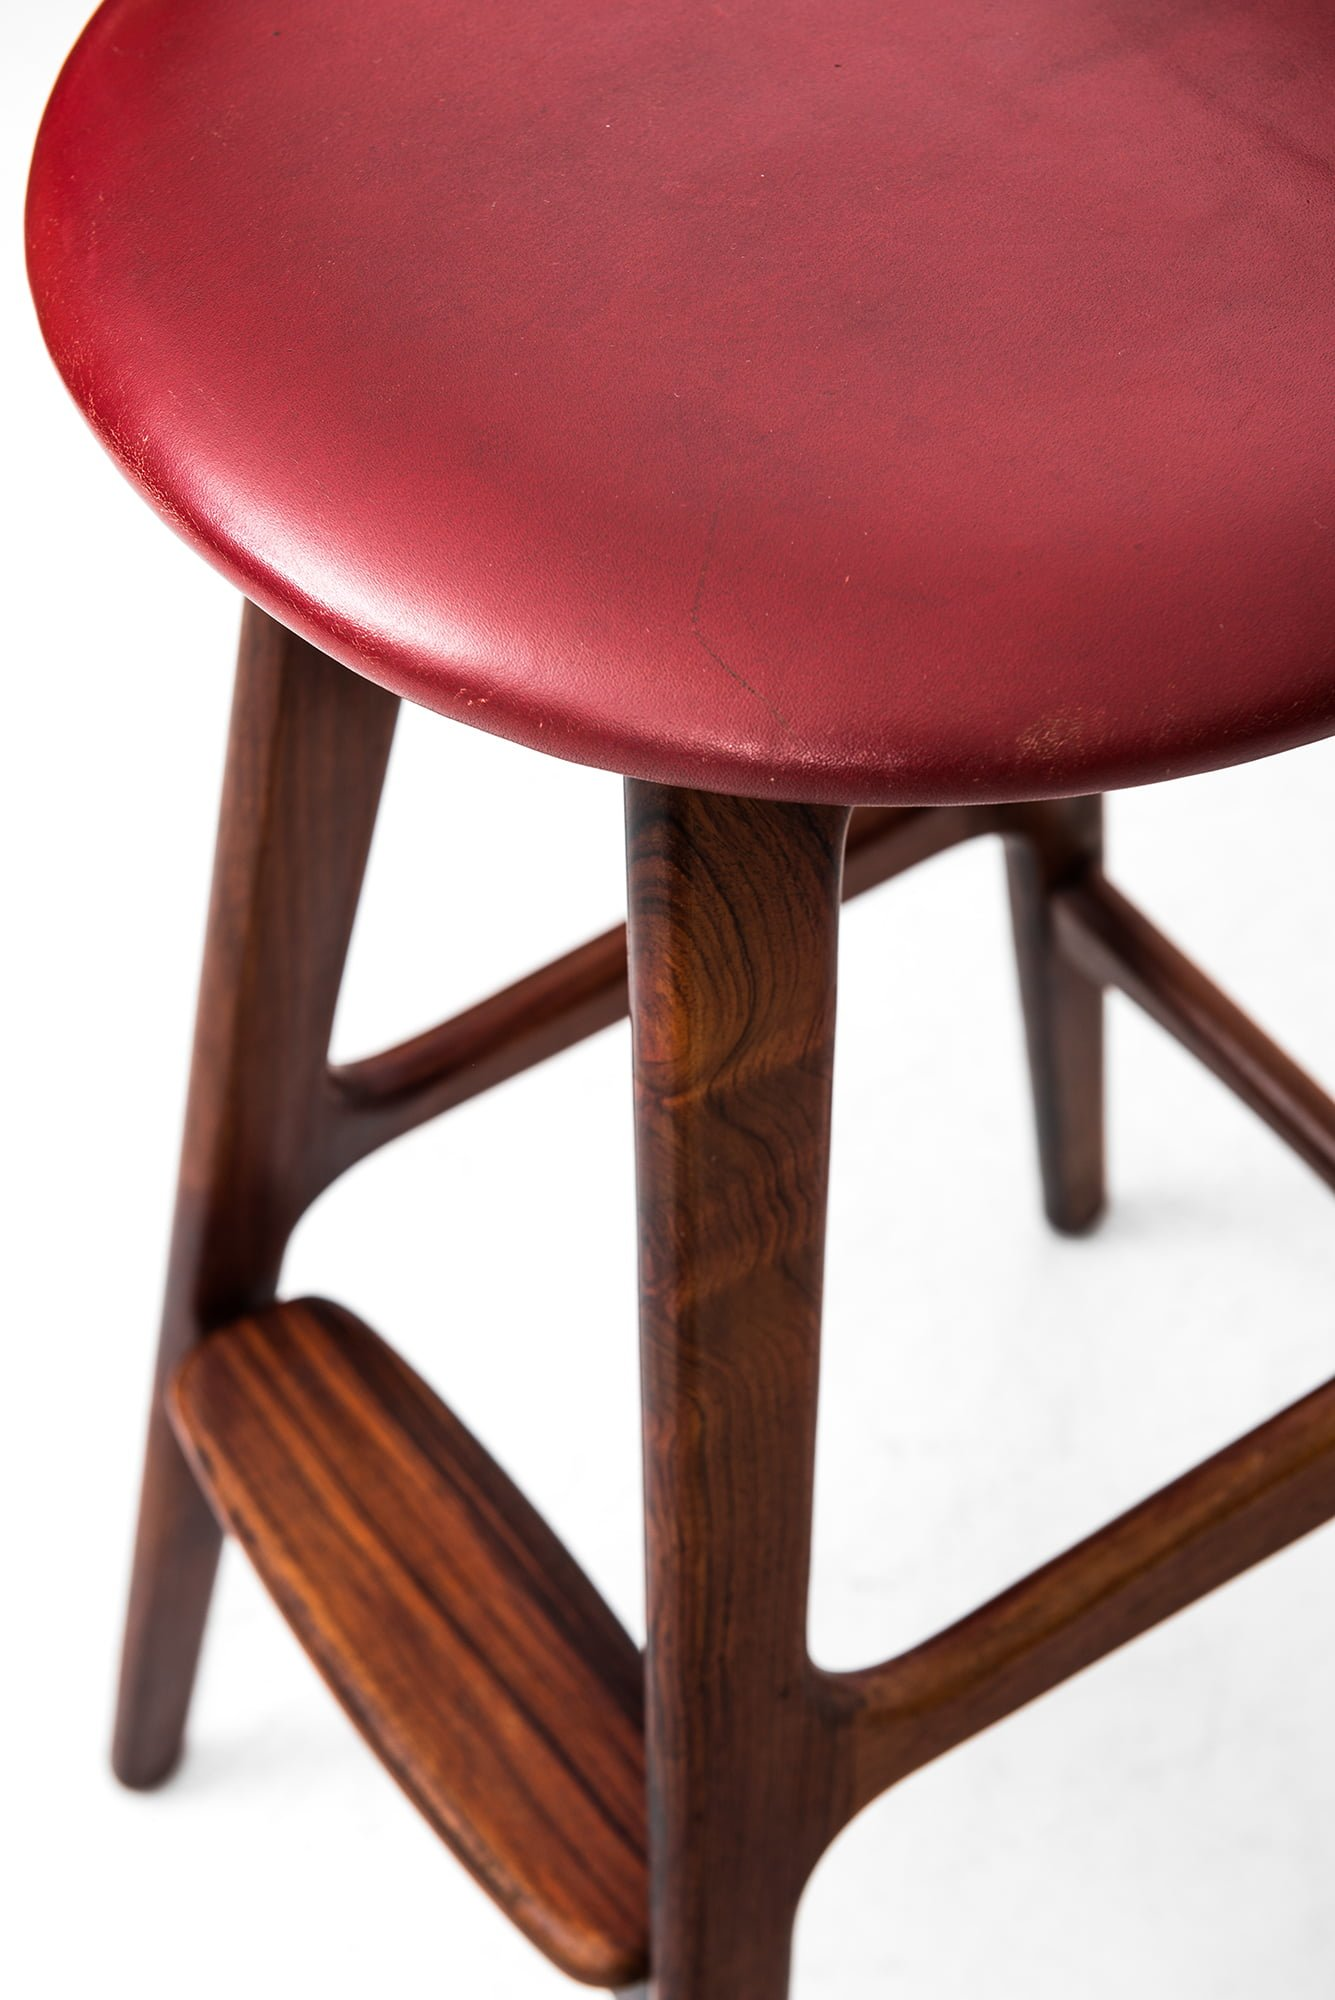 Buch bar stools model OD 61 in rosewood at Studio Schalling